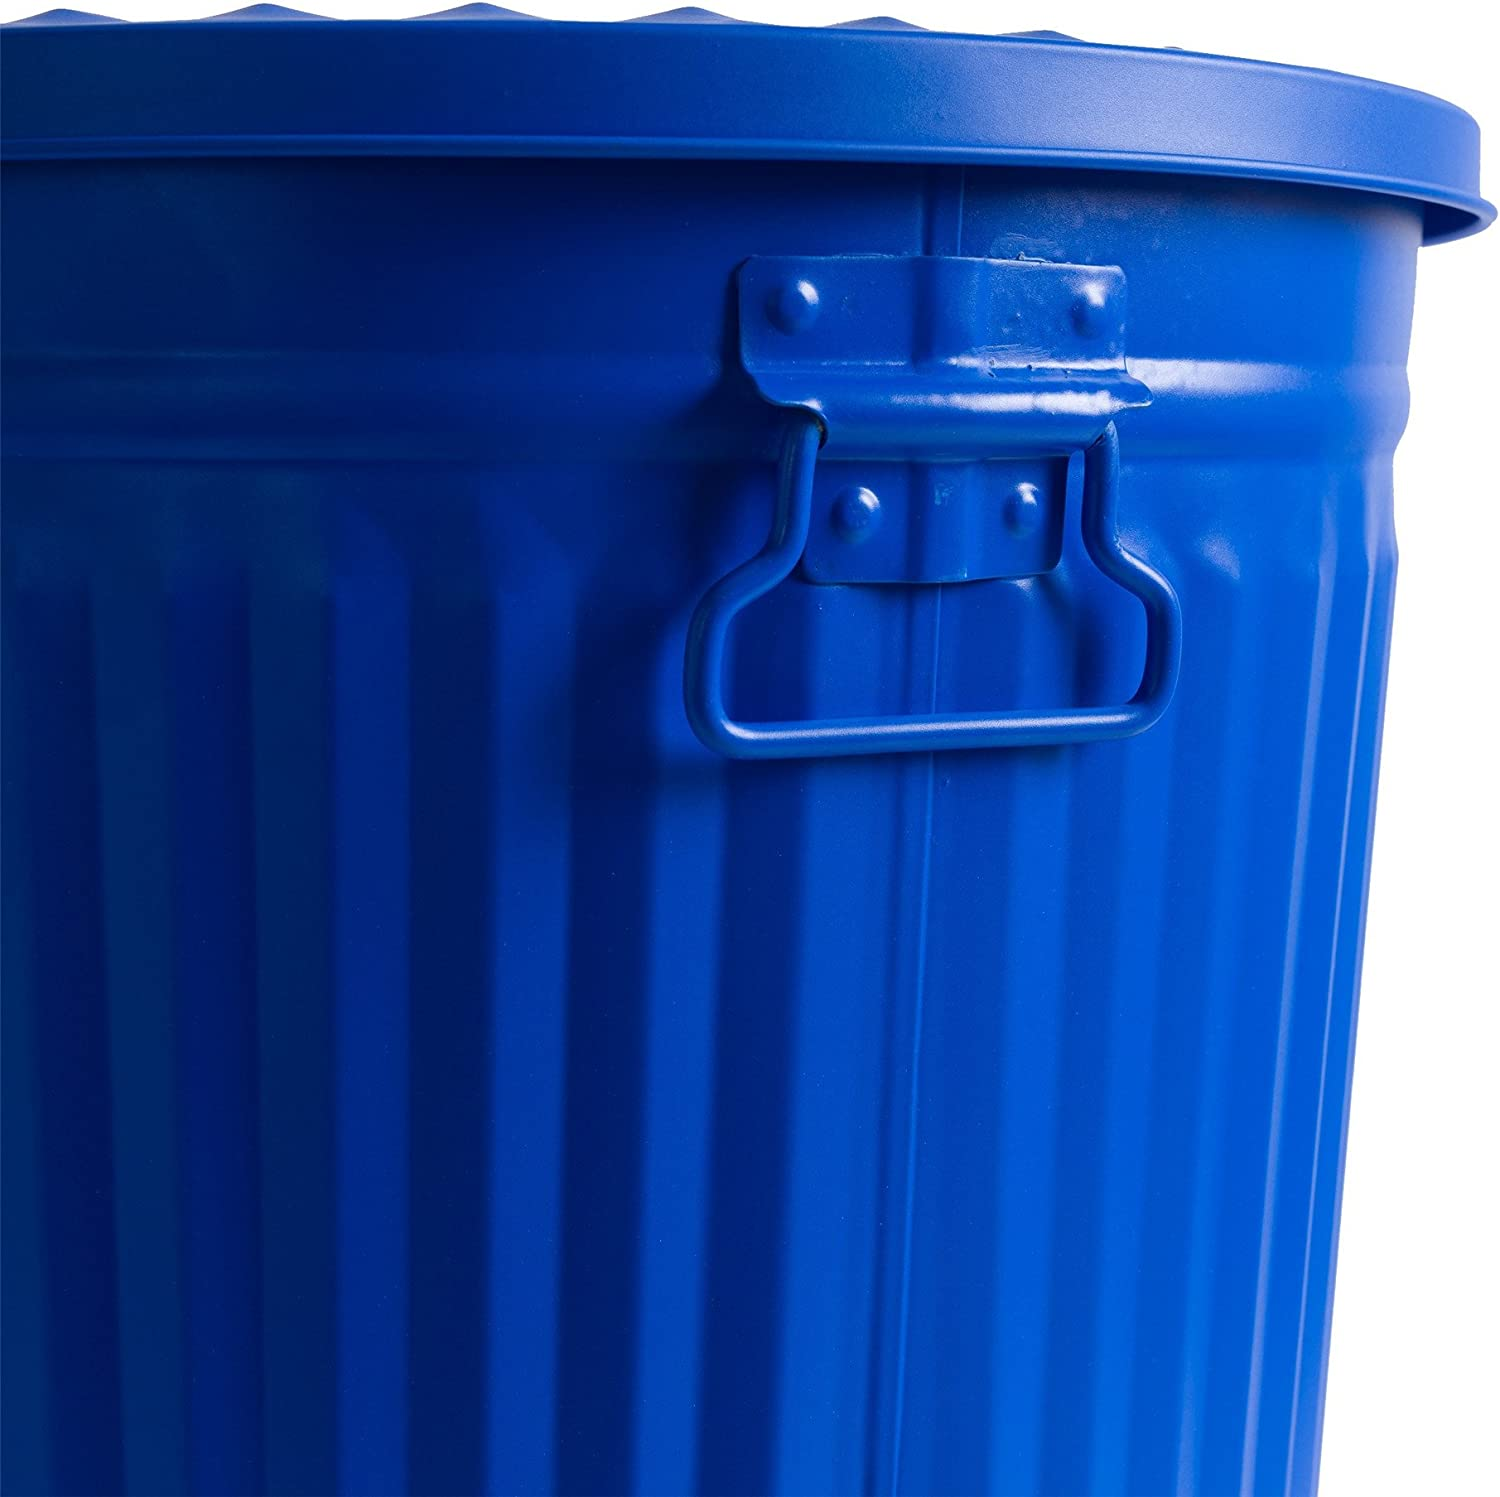 Laundry Basket with Lid and Carrying Handles Blue 7 Litres Metal Garbage Bin Vintage Retro Trash Can Home/&Decorations Indoor Dustbin